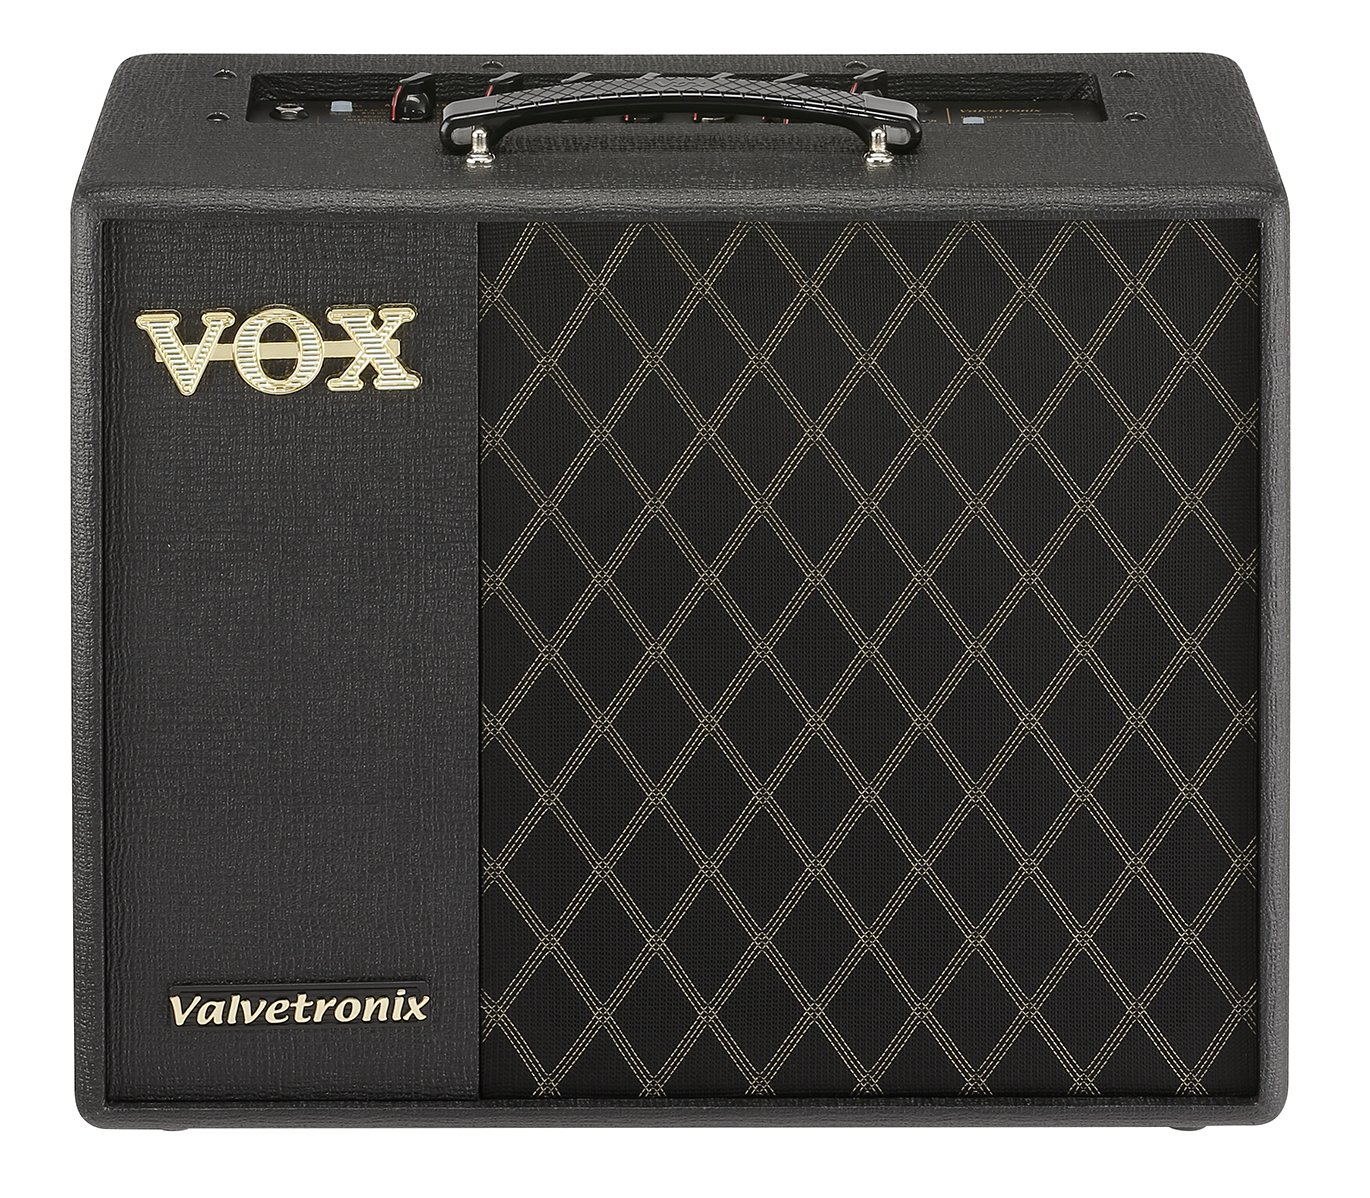 Vox Vt40x Modeling Amp 40w Musical Instruments Amplifier Have Over Normal Single Or Multistage